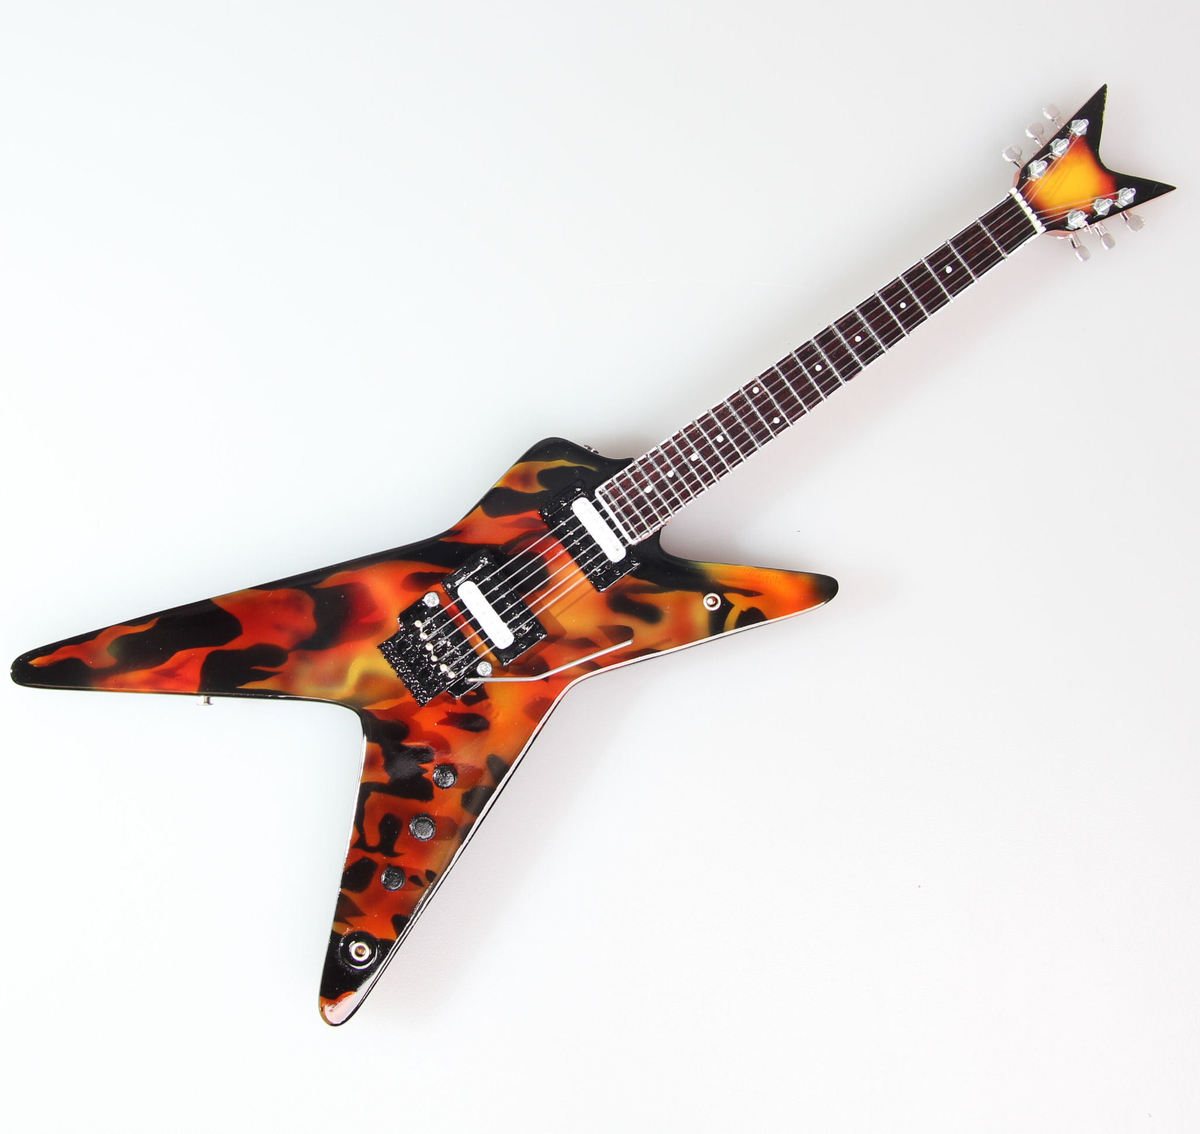 kytara Pantera - Dimebag Darrell - Flame - MINI GUITAR USA - DD Fire